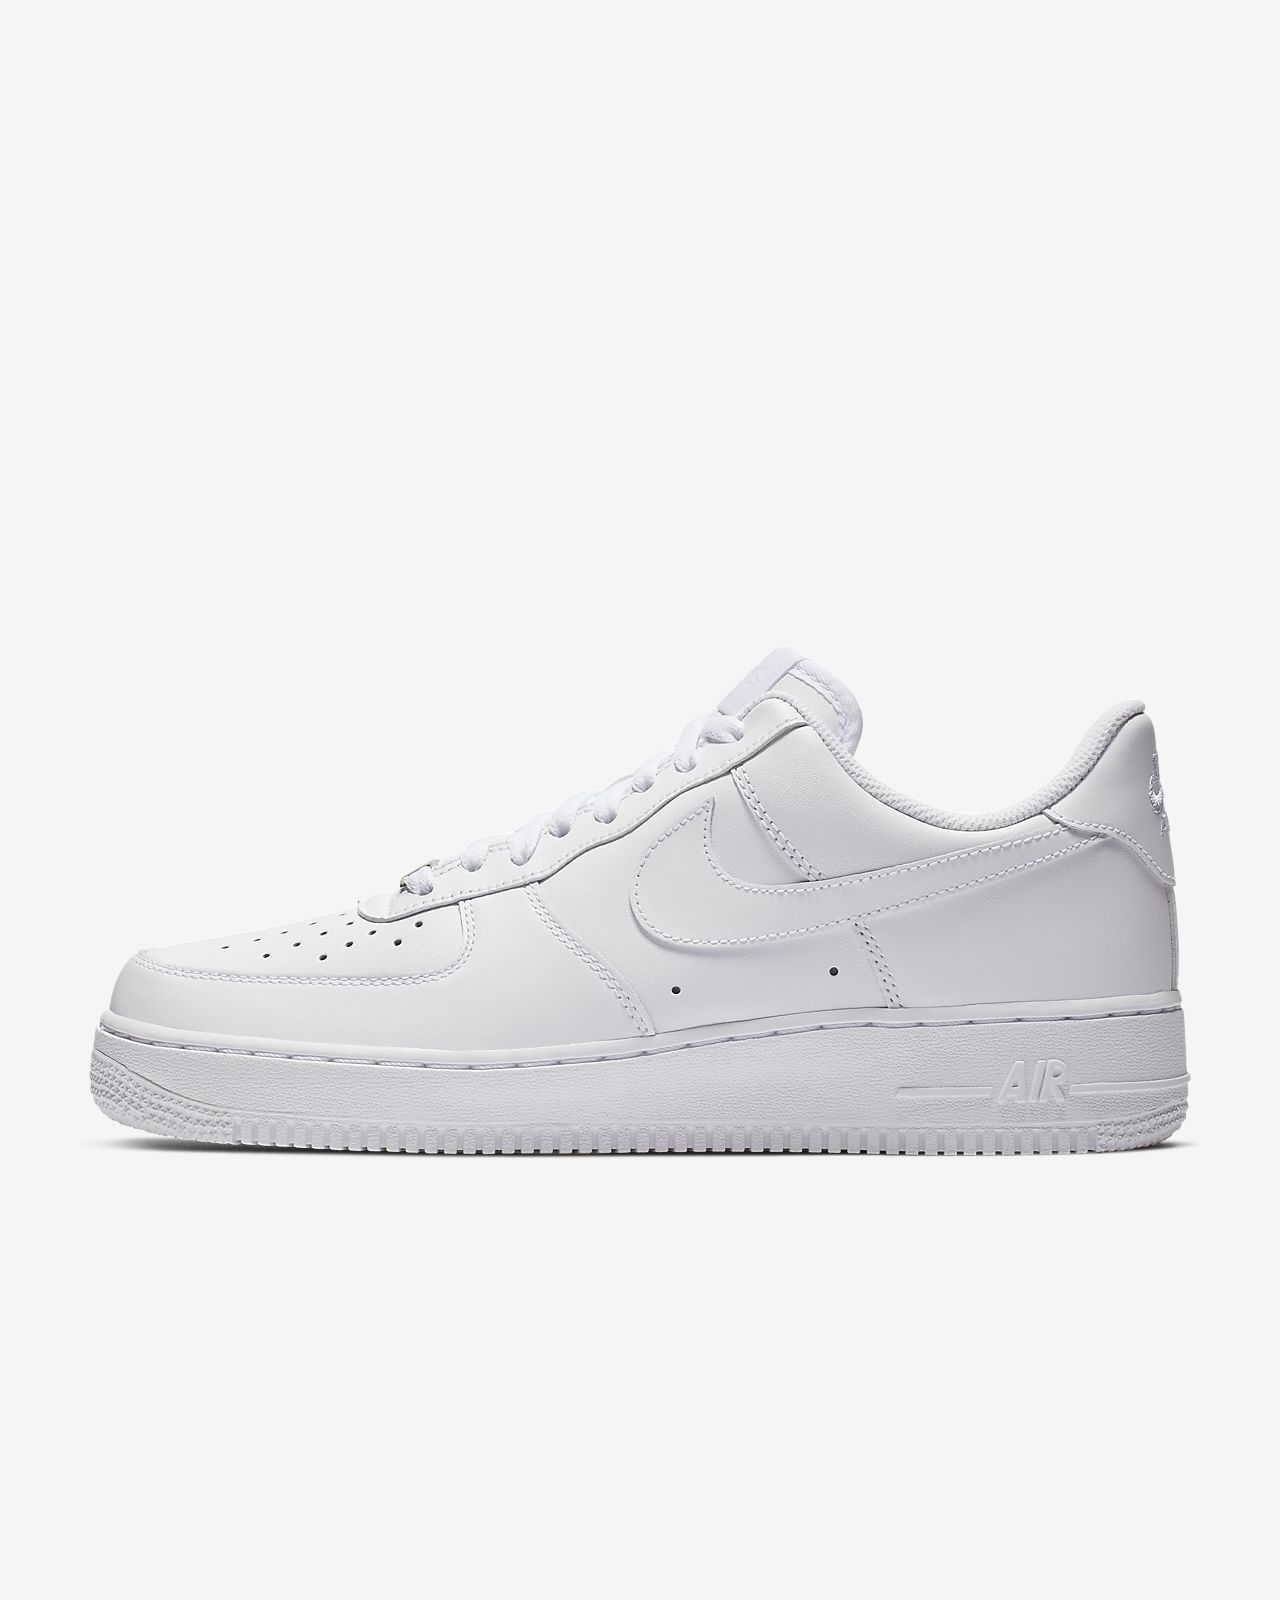 super popular 45c8e 36c25 ... Nike Air Force 1 07-sko til kvinder